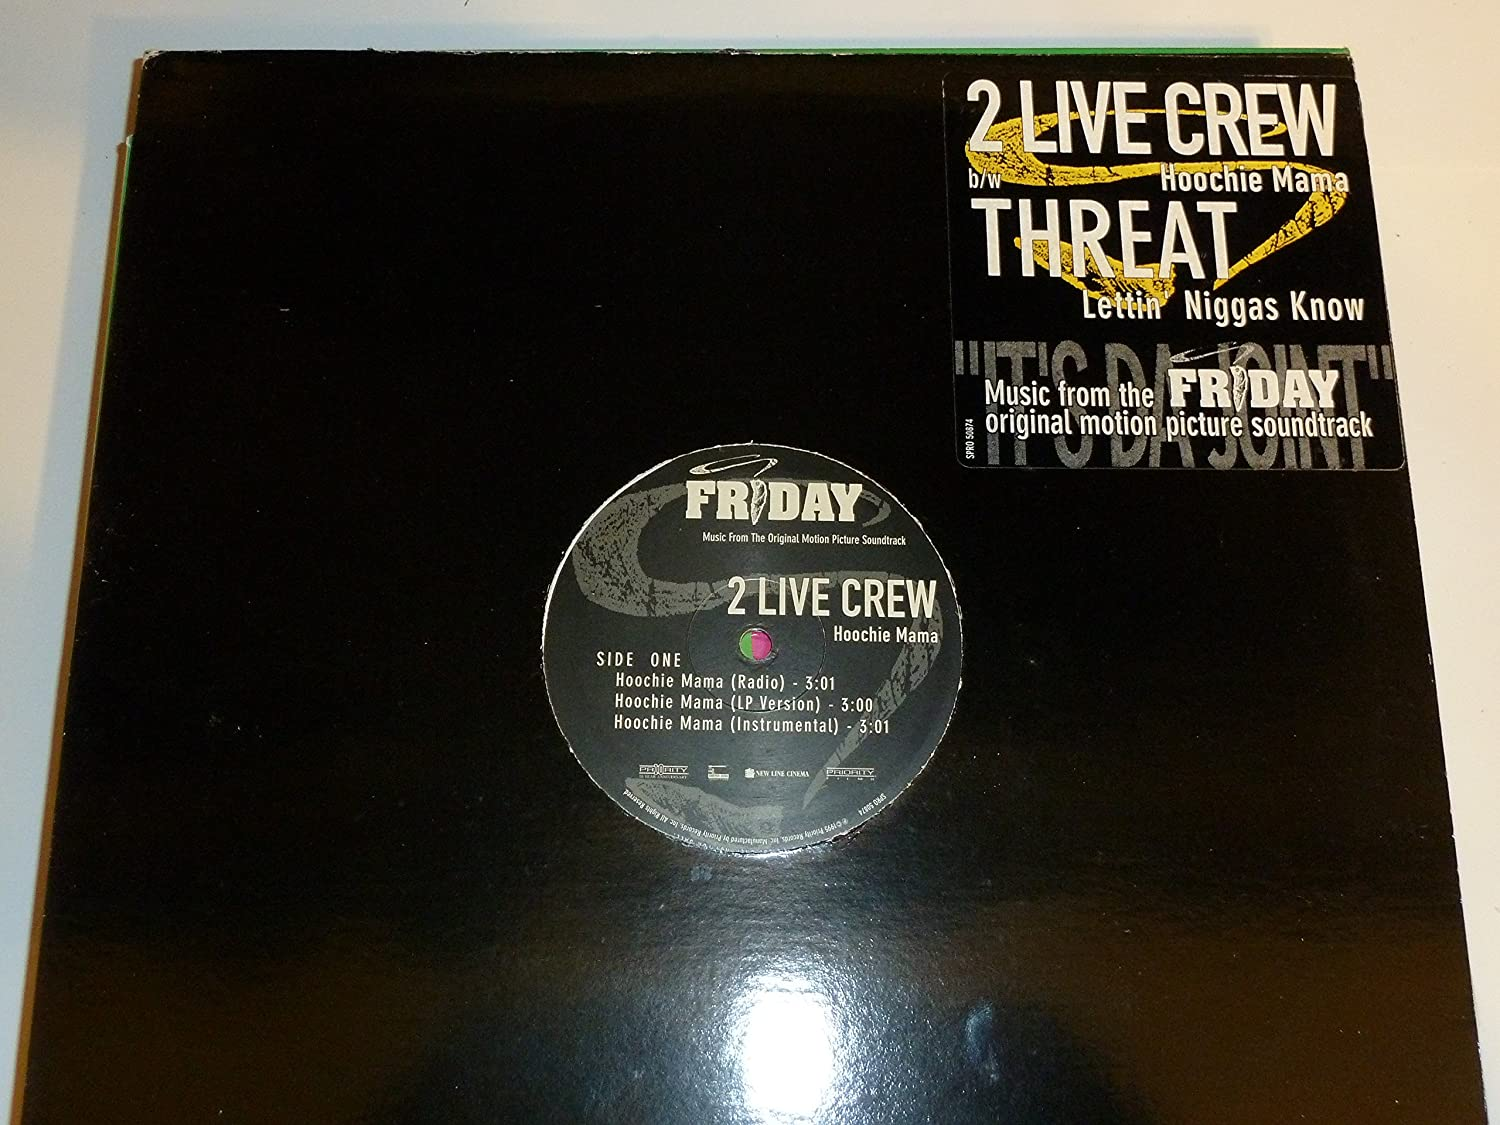 2 Live Crew Hoochie Mama Threat Music From The Motion Picture Friday Amazon Com Music If you have serenitynow installed, please update to the latest version or disable it. crew hoochie mama threat music